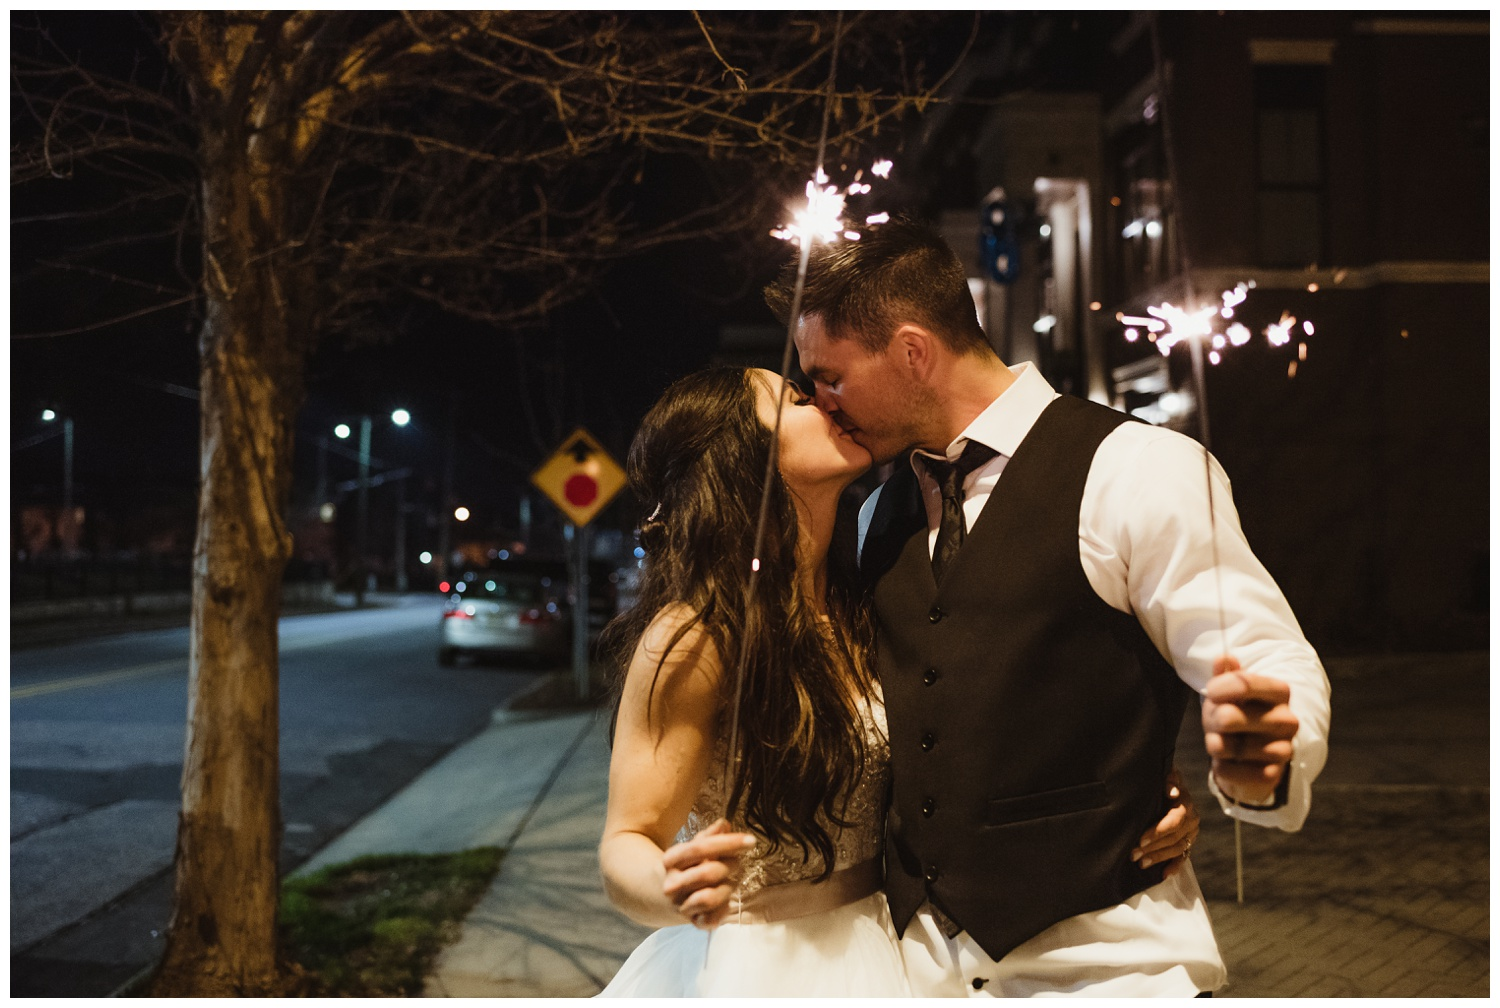 The bride and groom kiss with sparklers after their wedding reception at All Saints Chapel in Raleigh, North Carolina, pictures by Rose Trail Images.